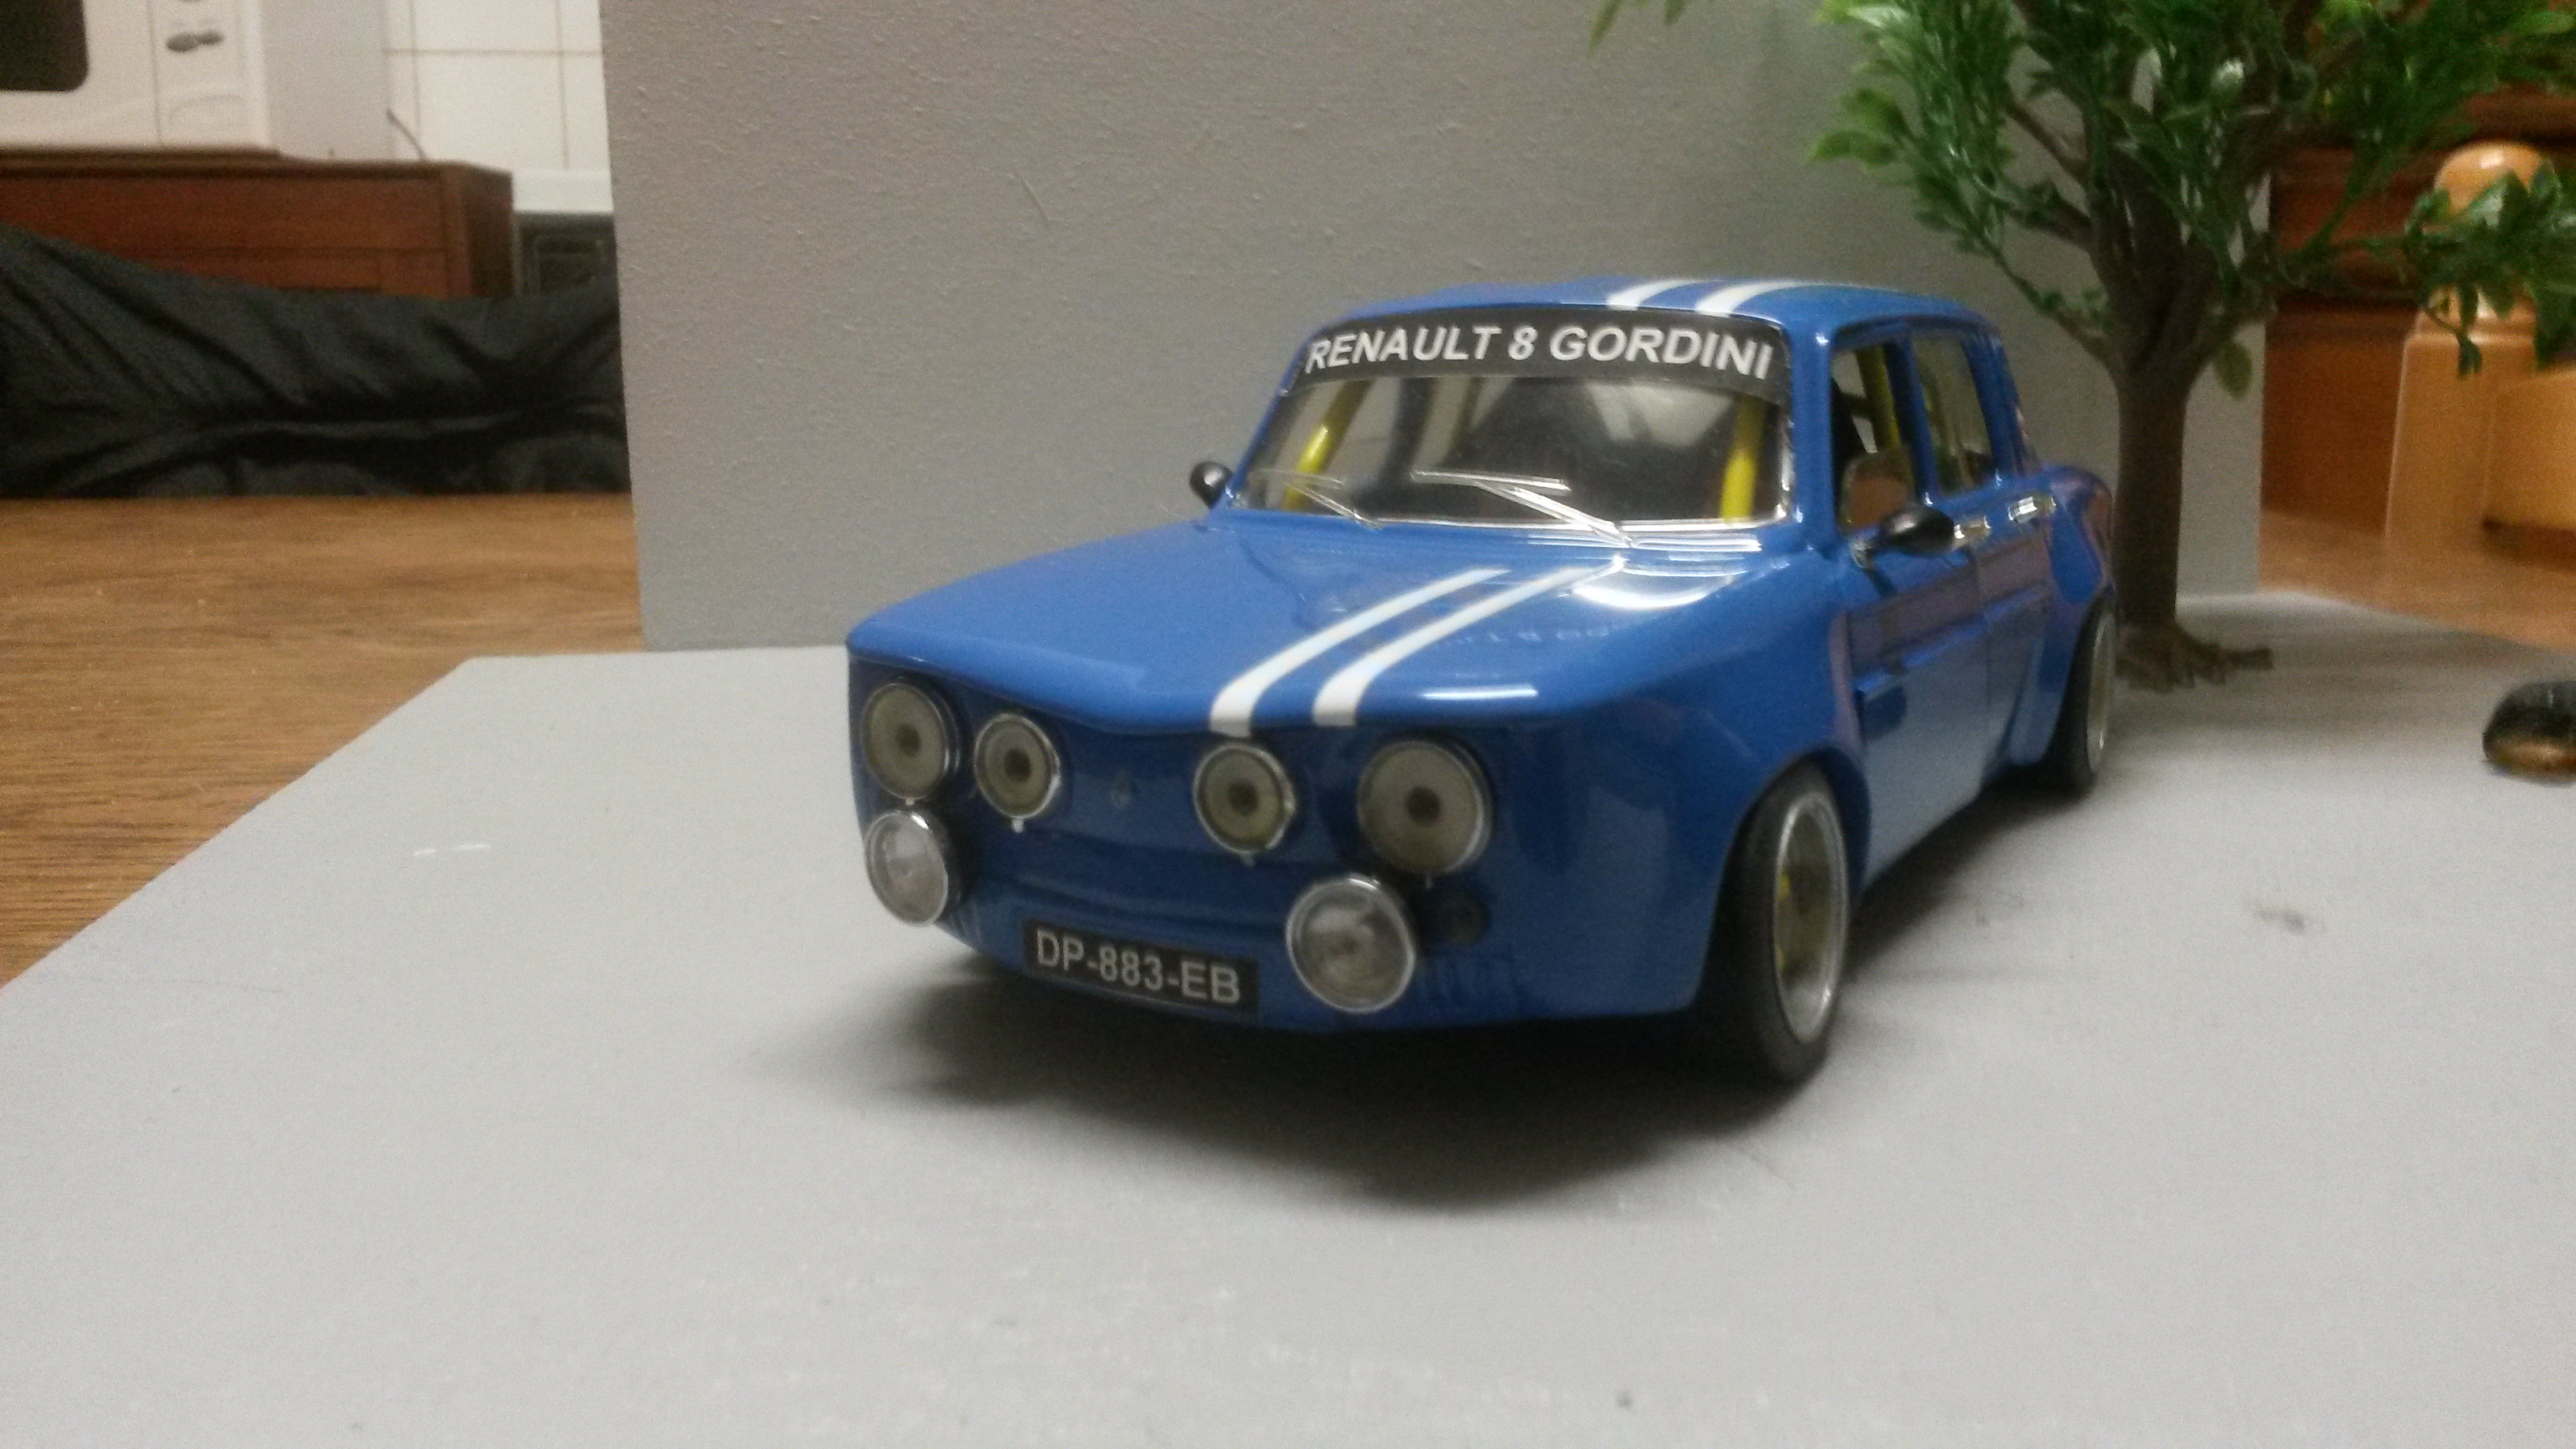 Renault 8 Gordini bleu kit large groupe A tuning . Renault 8 Gordini bleu kit large groupe A miniature 1/18